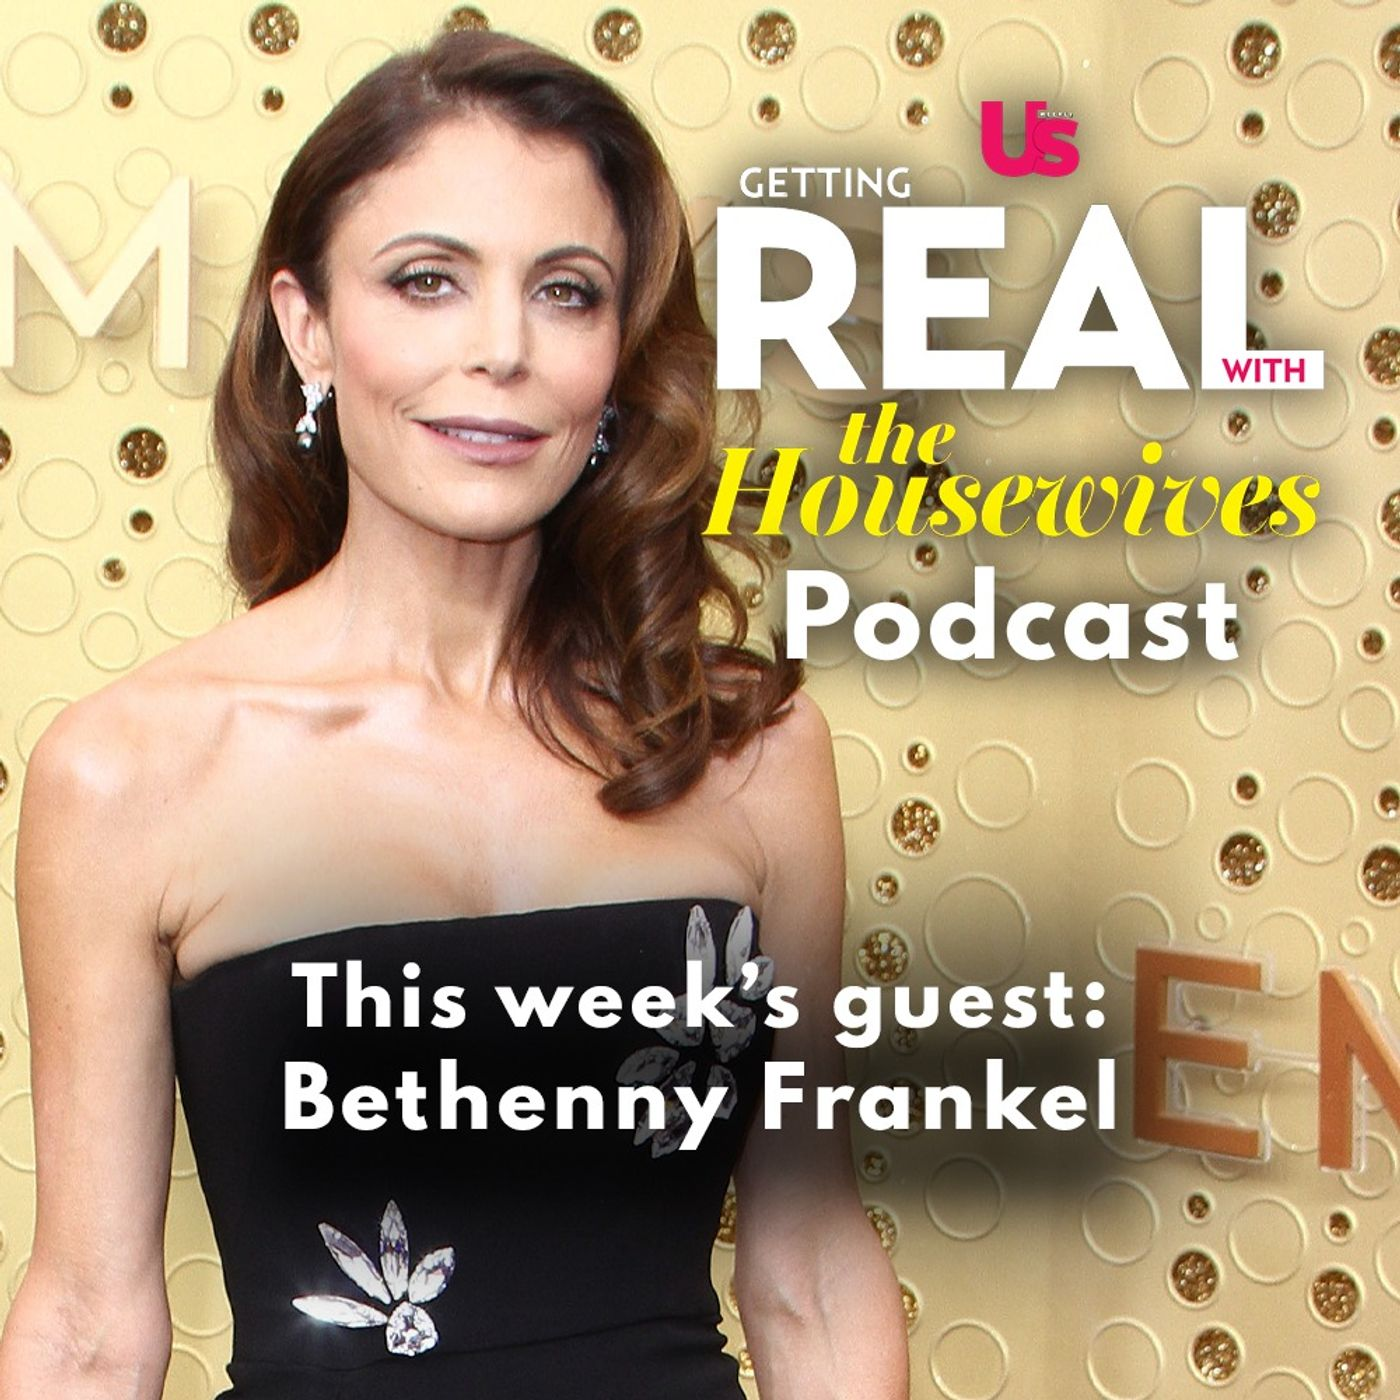 Bethenny Frankel Explains Why You Can't Be 'Thin, Successful' and 'Having Sex'